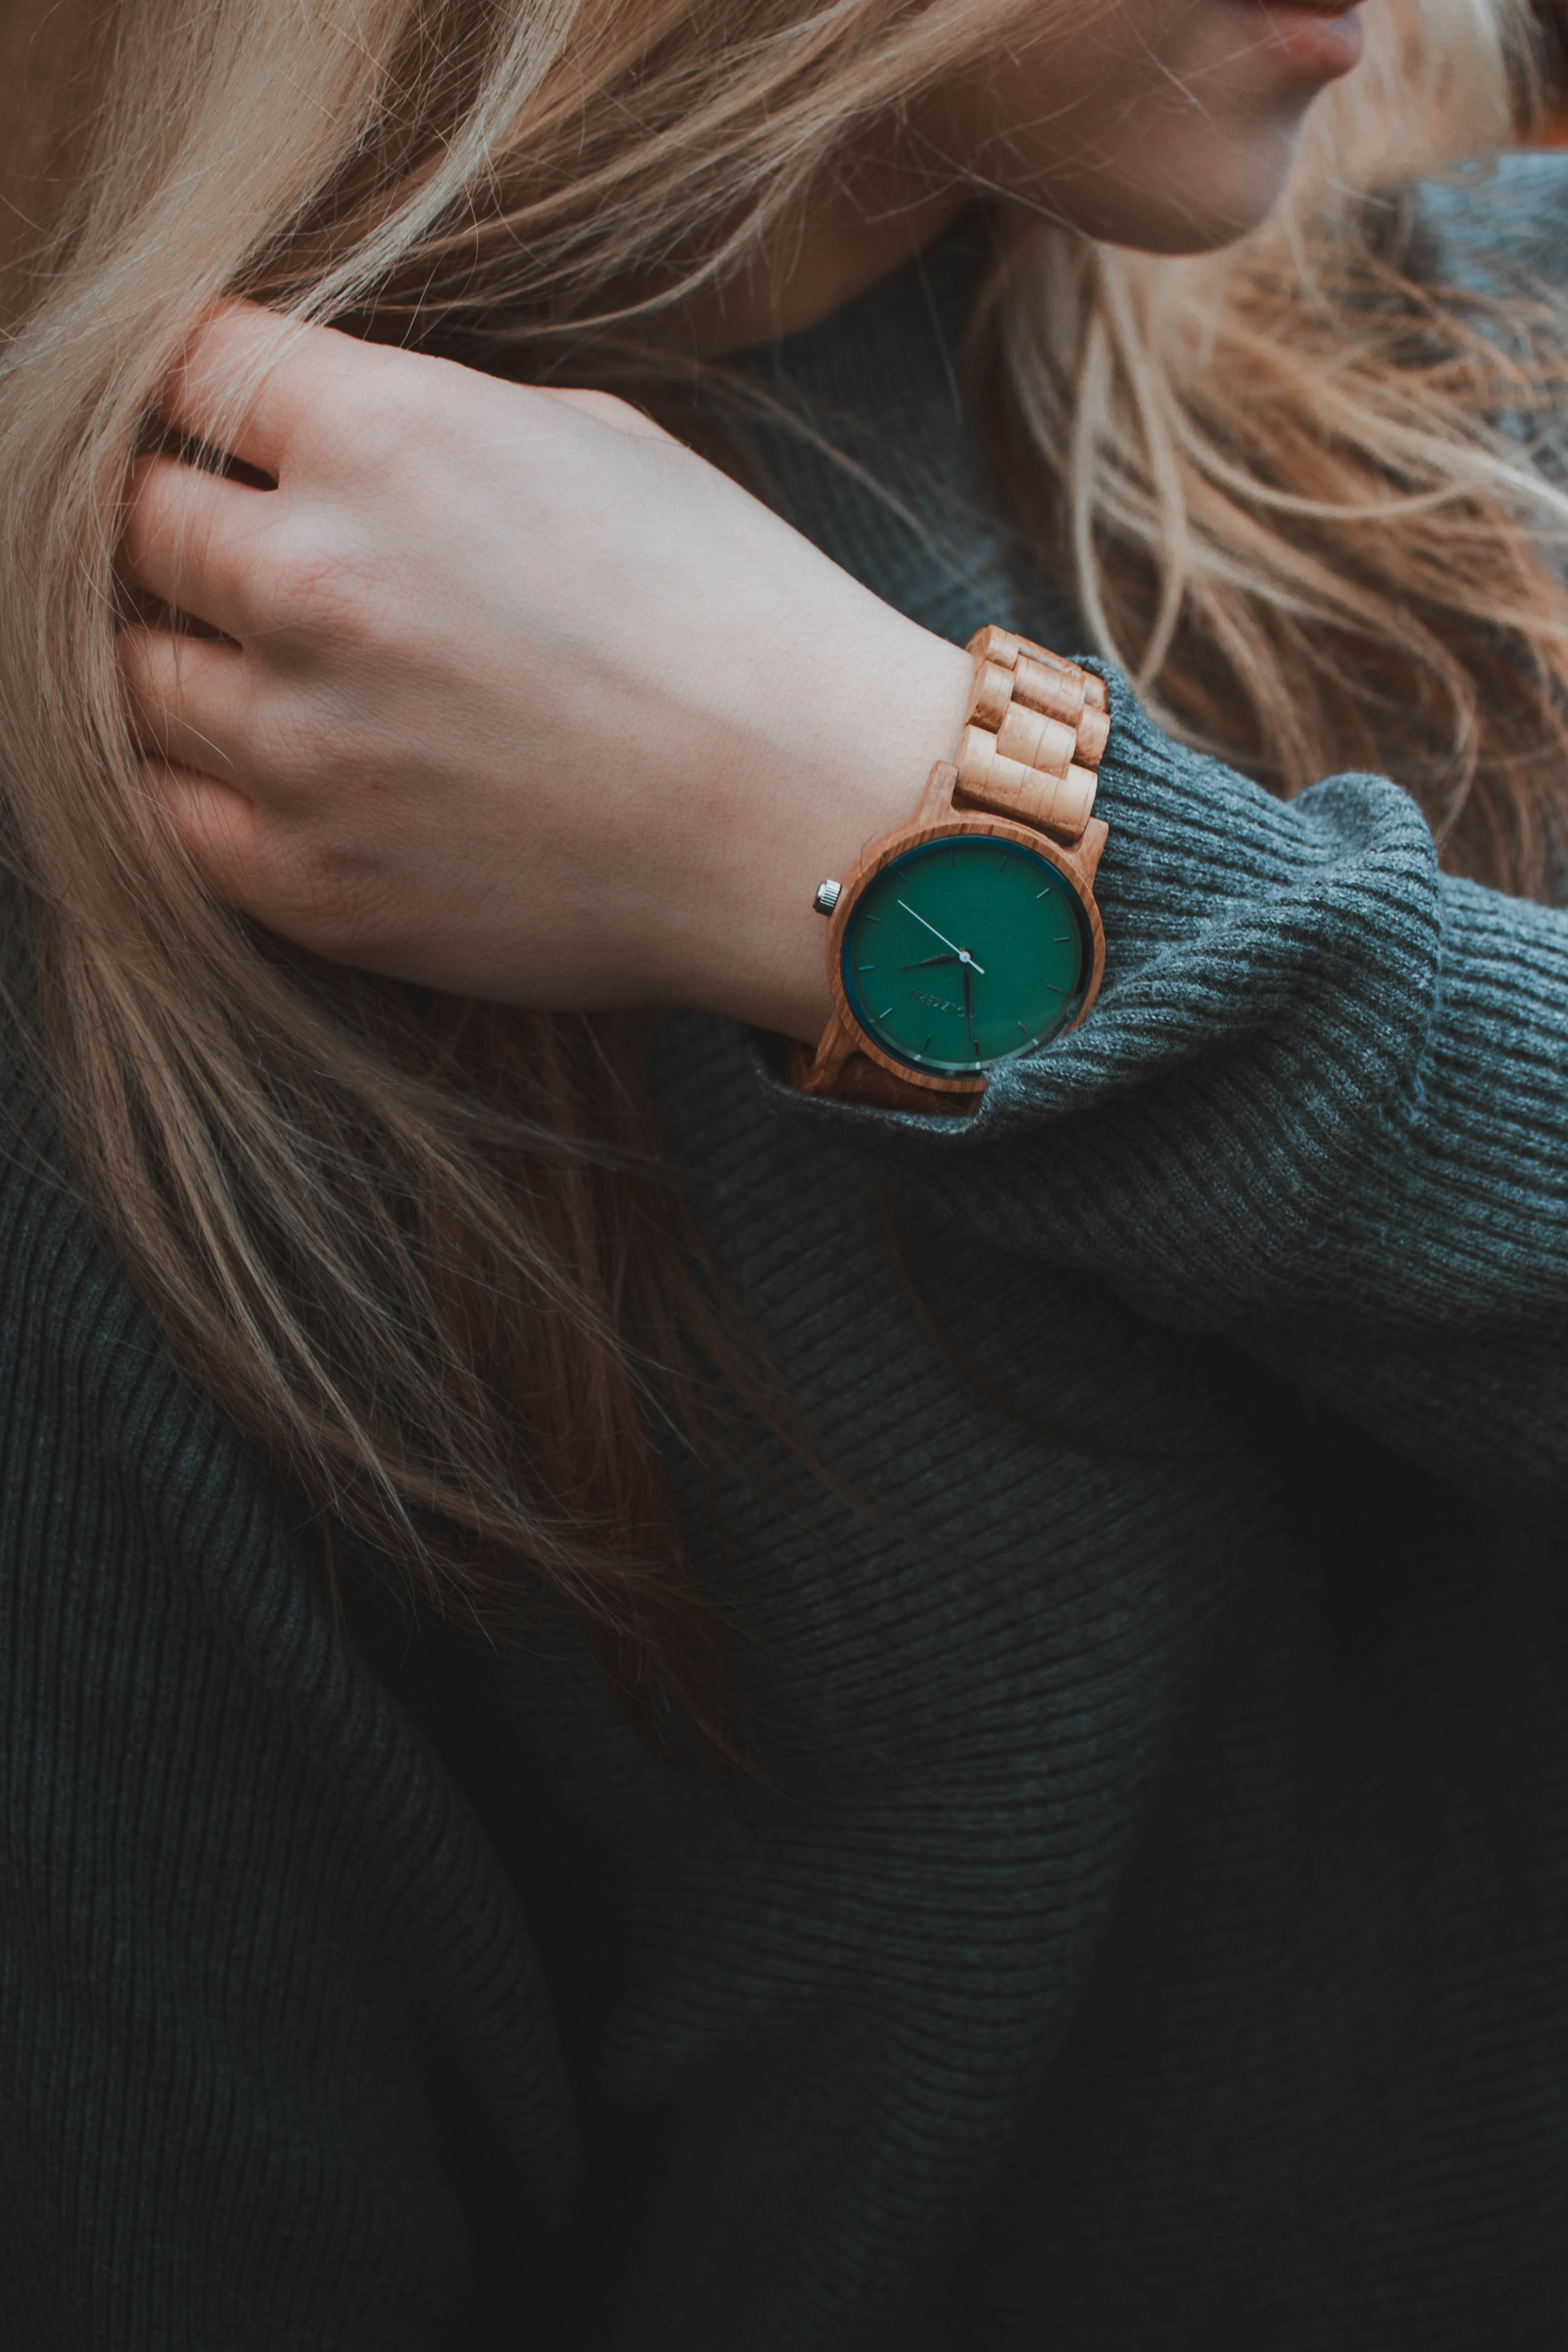 woman wearing gray sweater and gold-colored watch